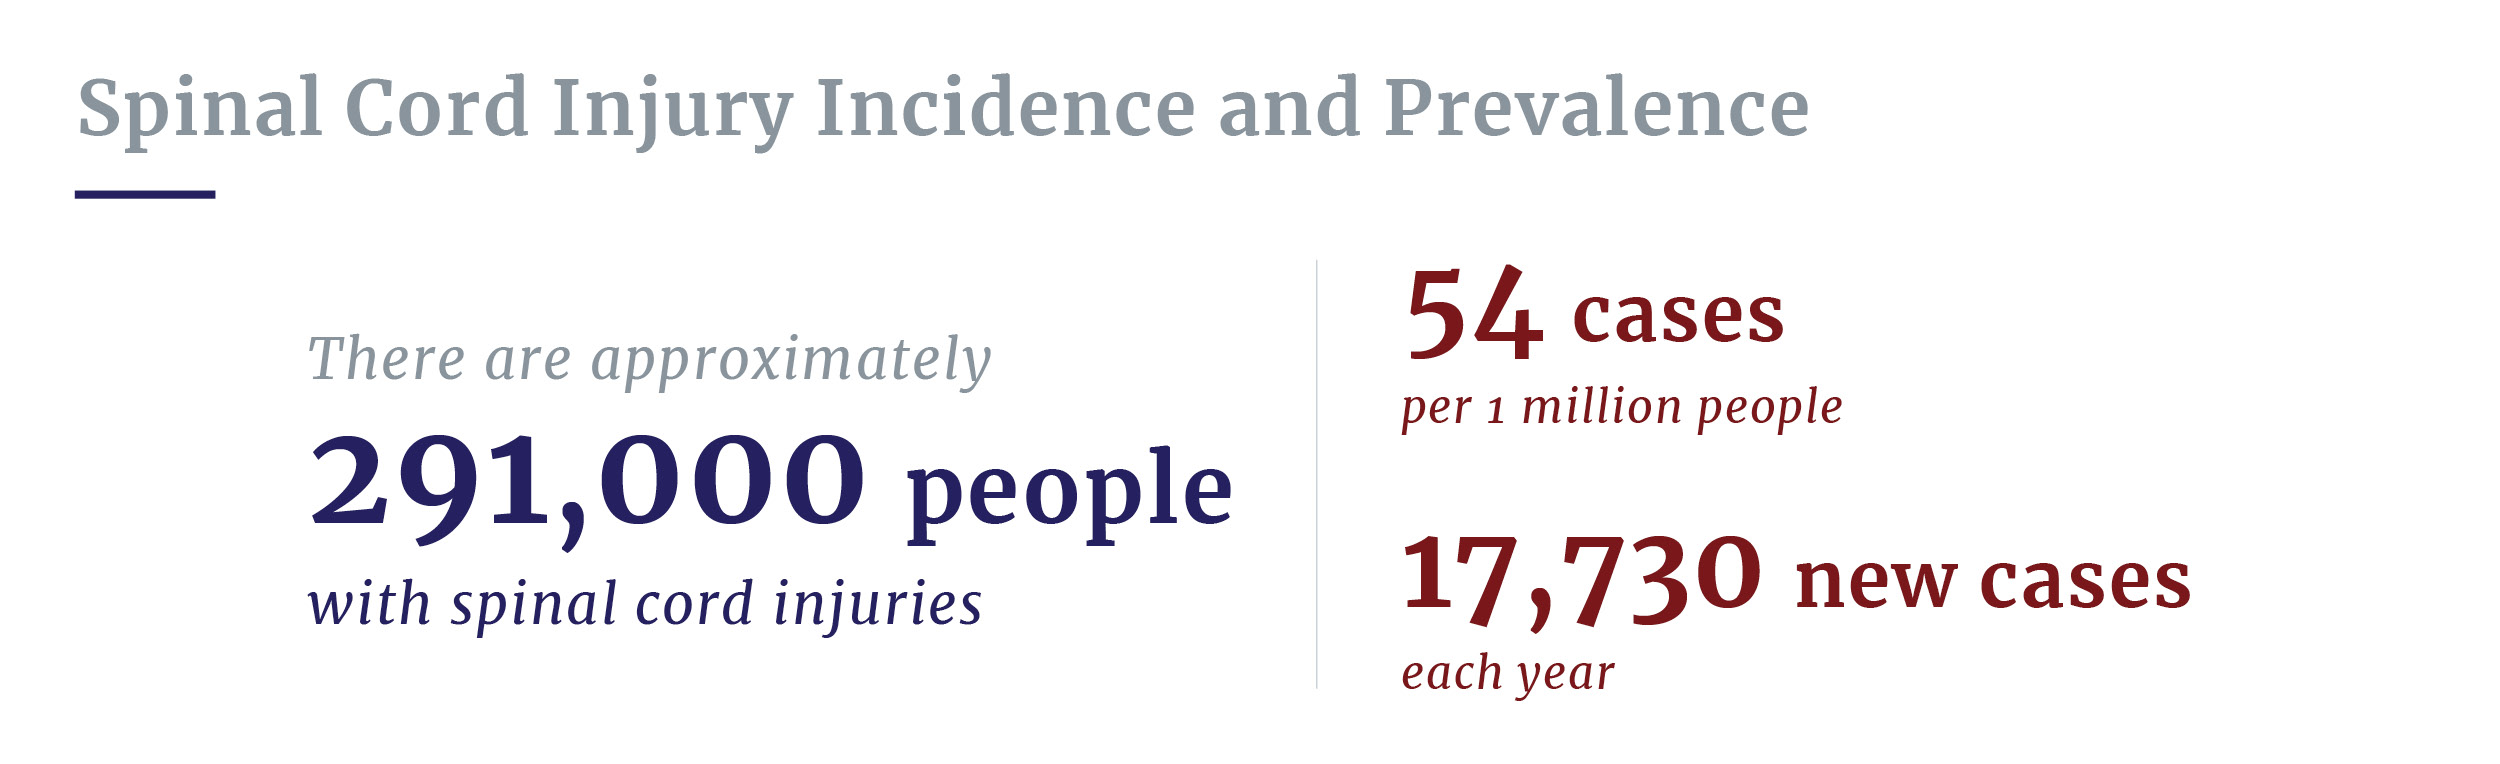 Spinal cord injury prevalence